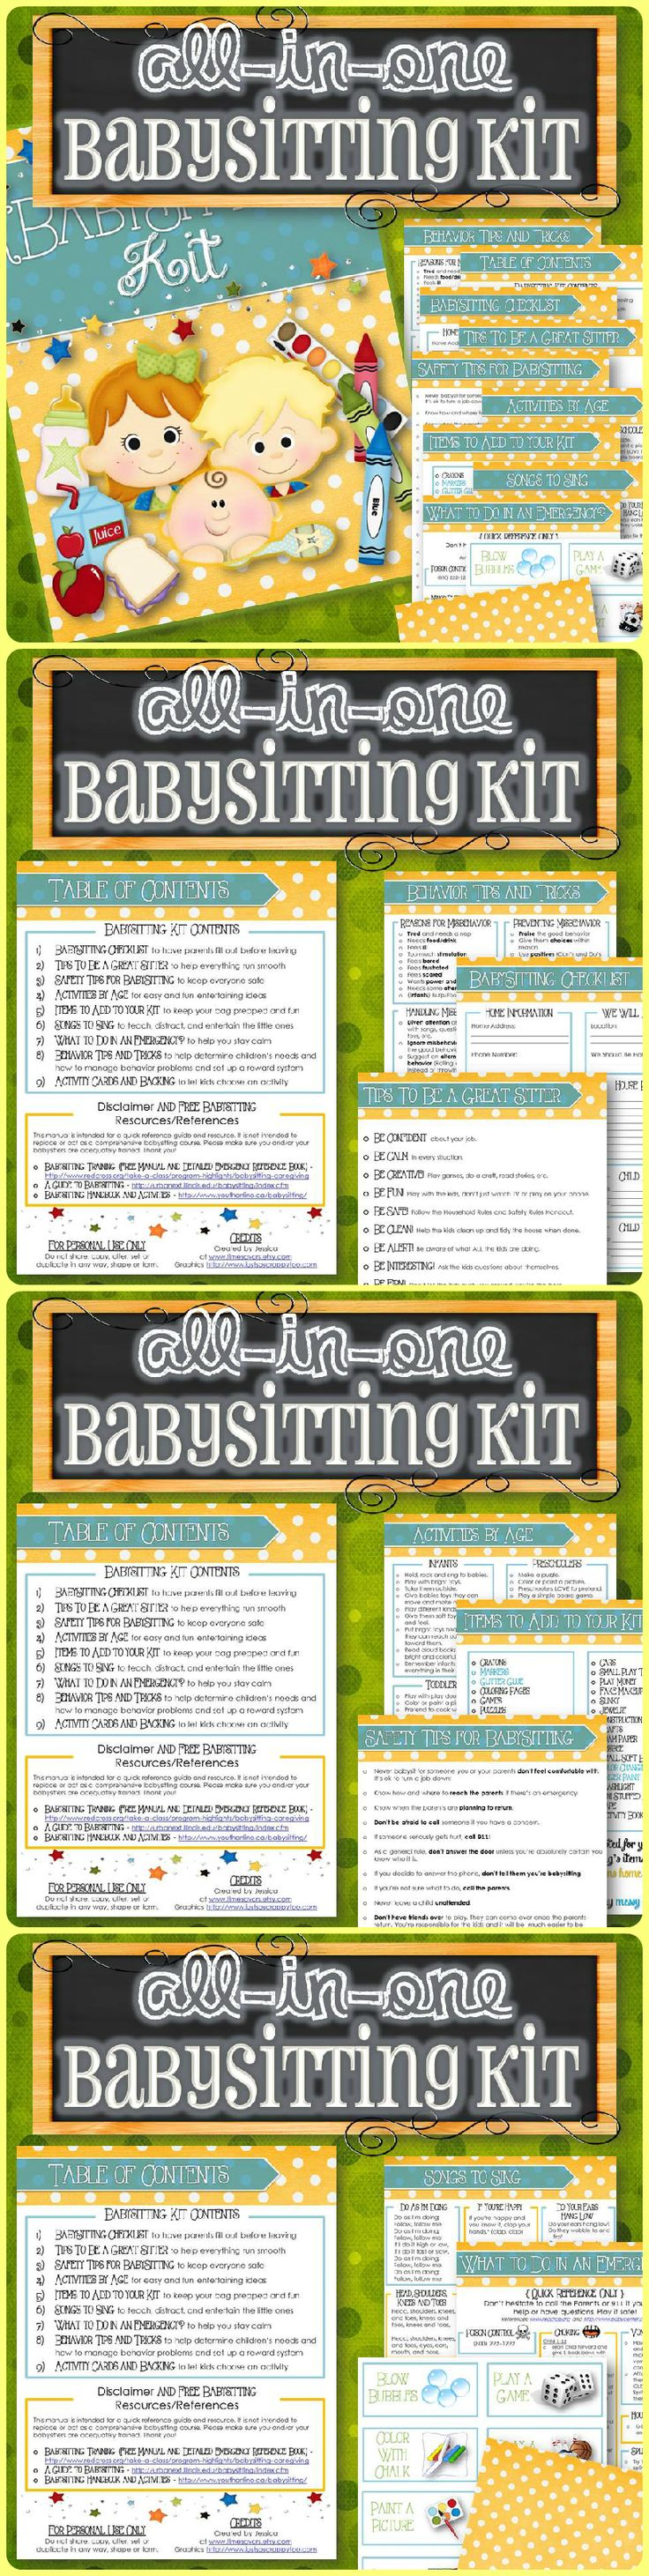 best images about babysitting house sitters have girls create items for babysitting kit don t actually use this just a reminder of an activity